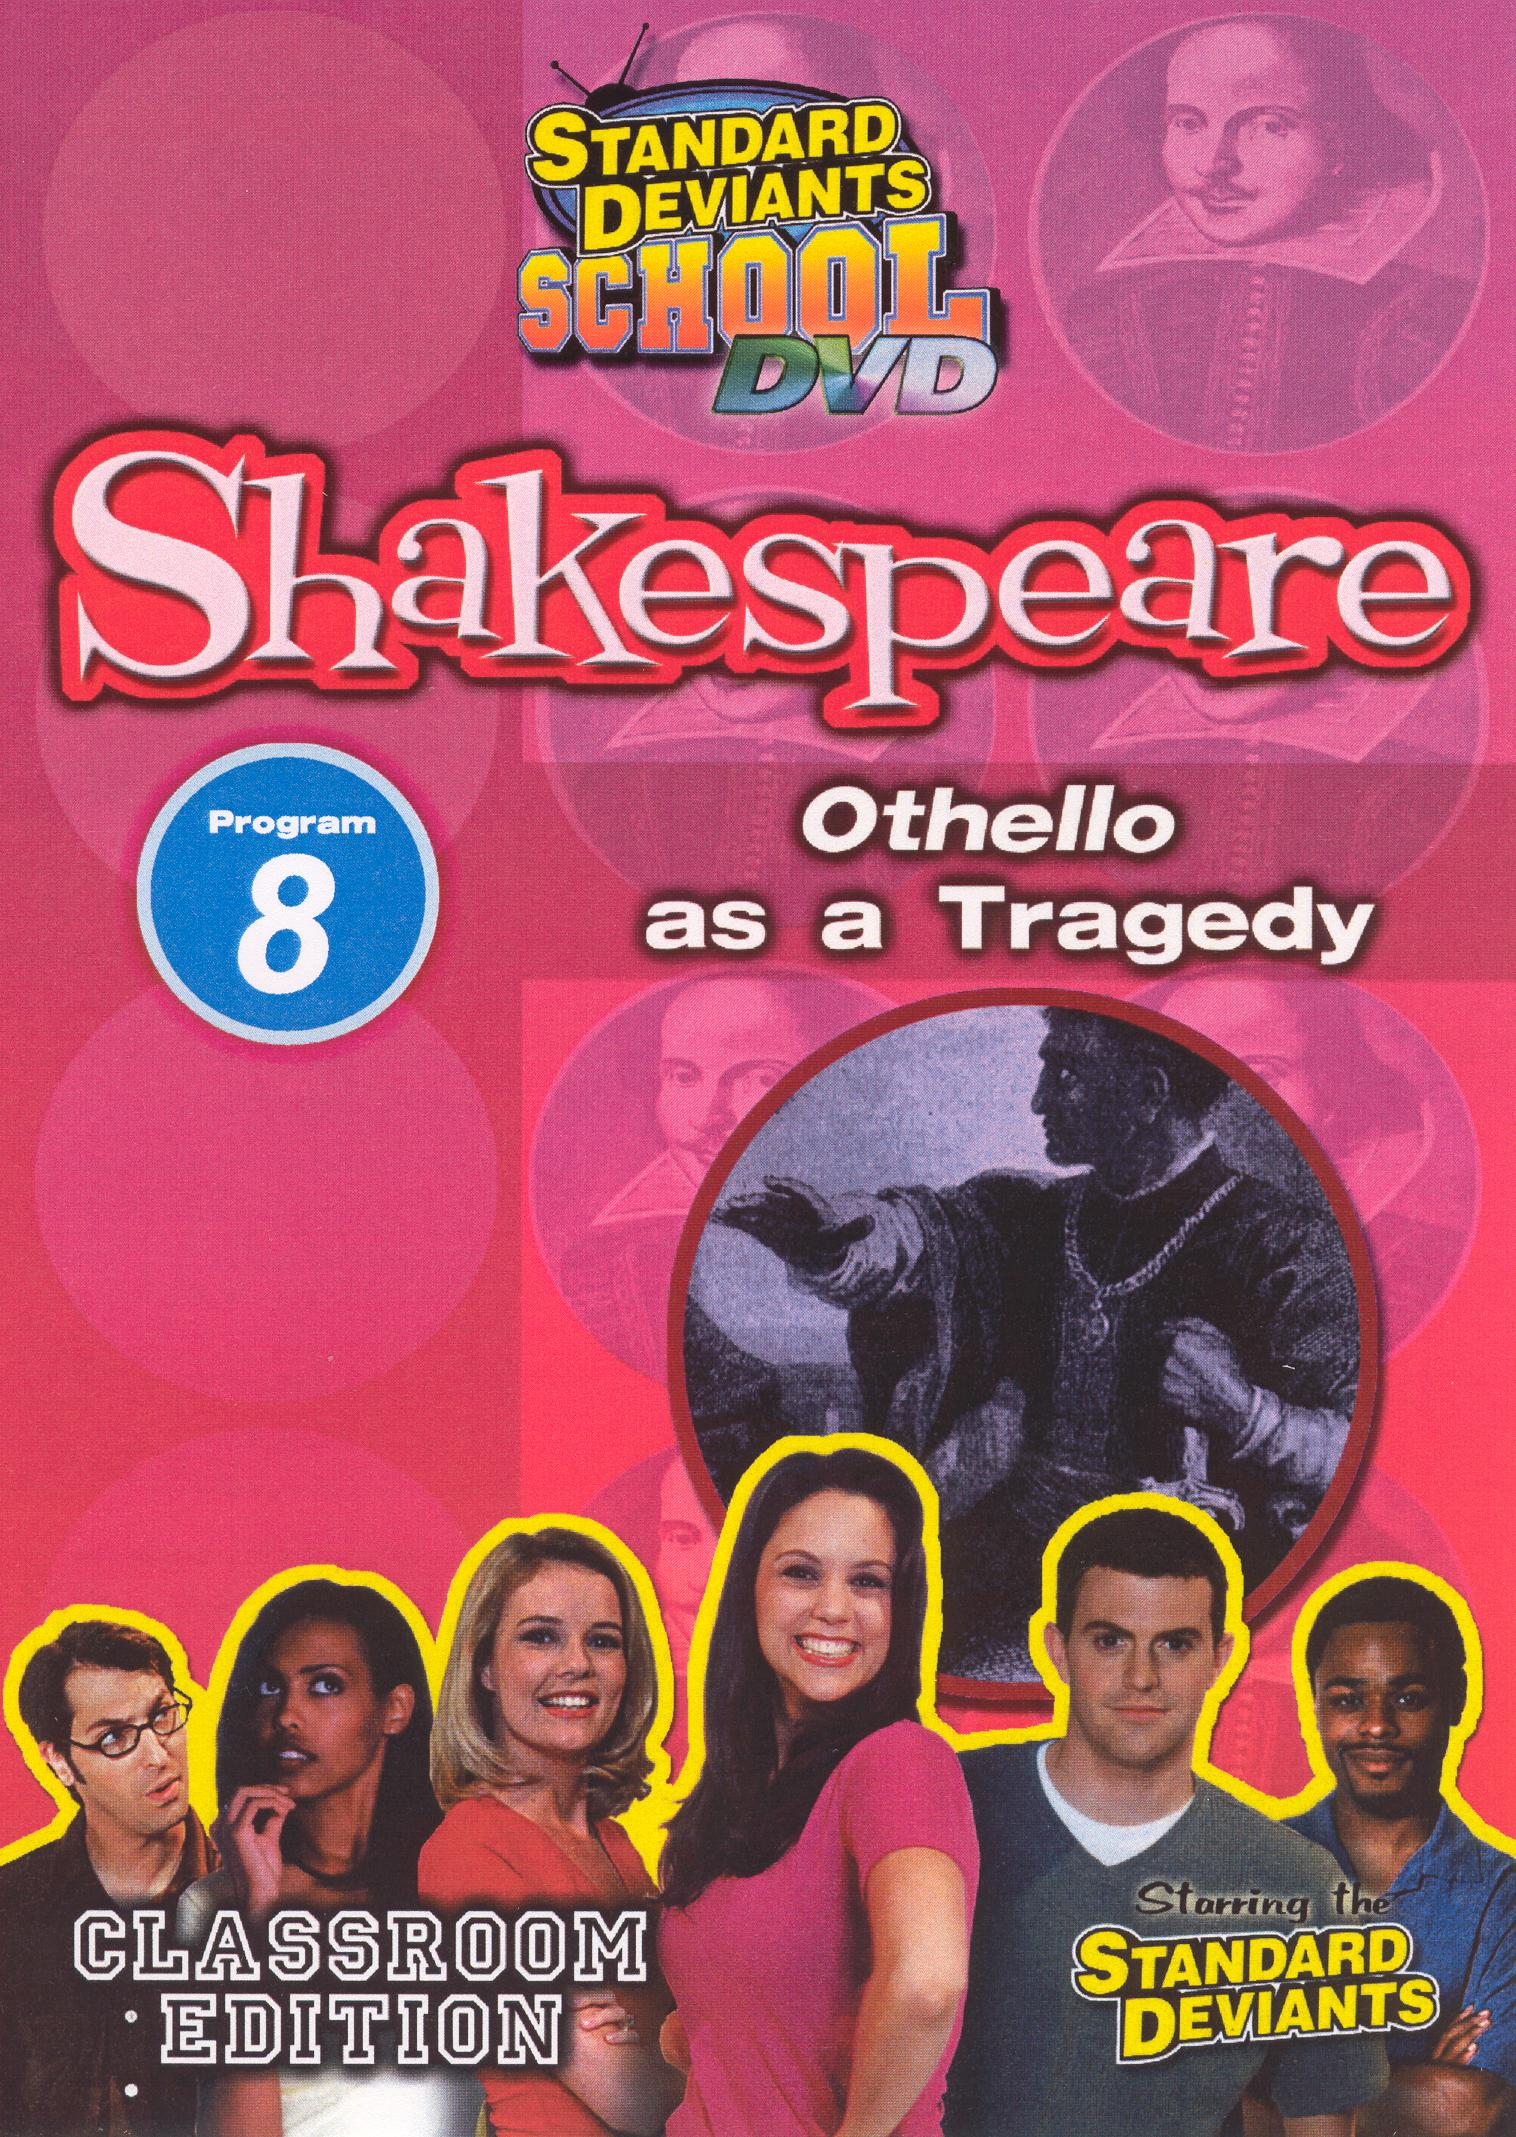 Standard Deviants School: Shakespeare, Program 8 - Othello as a Tragedy